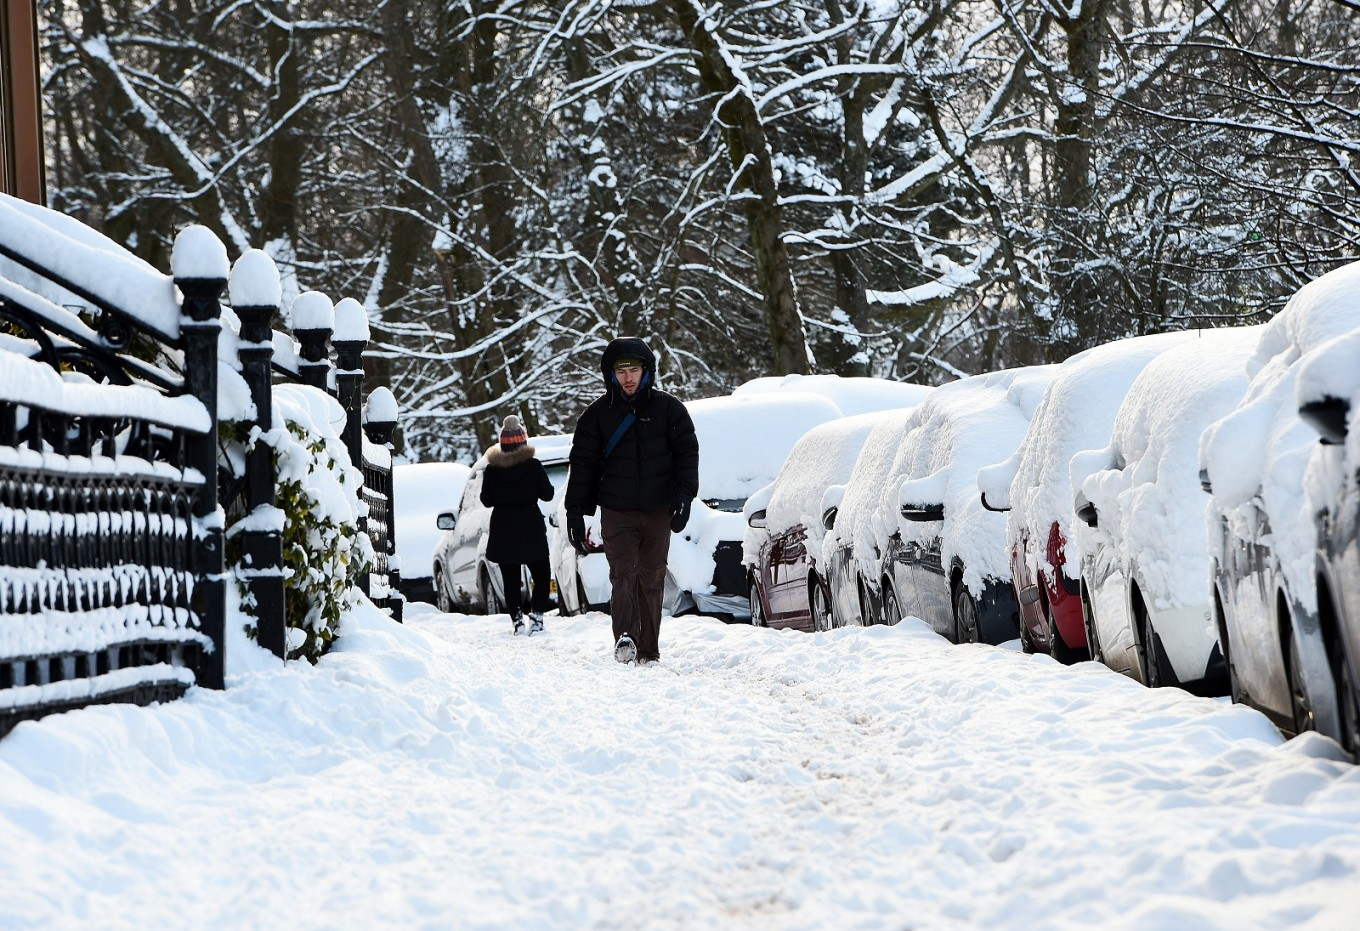 Deadly blizzards lash Europe, air travel disrupted by snow